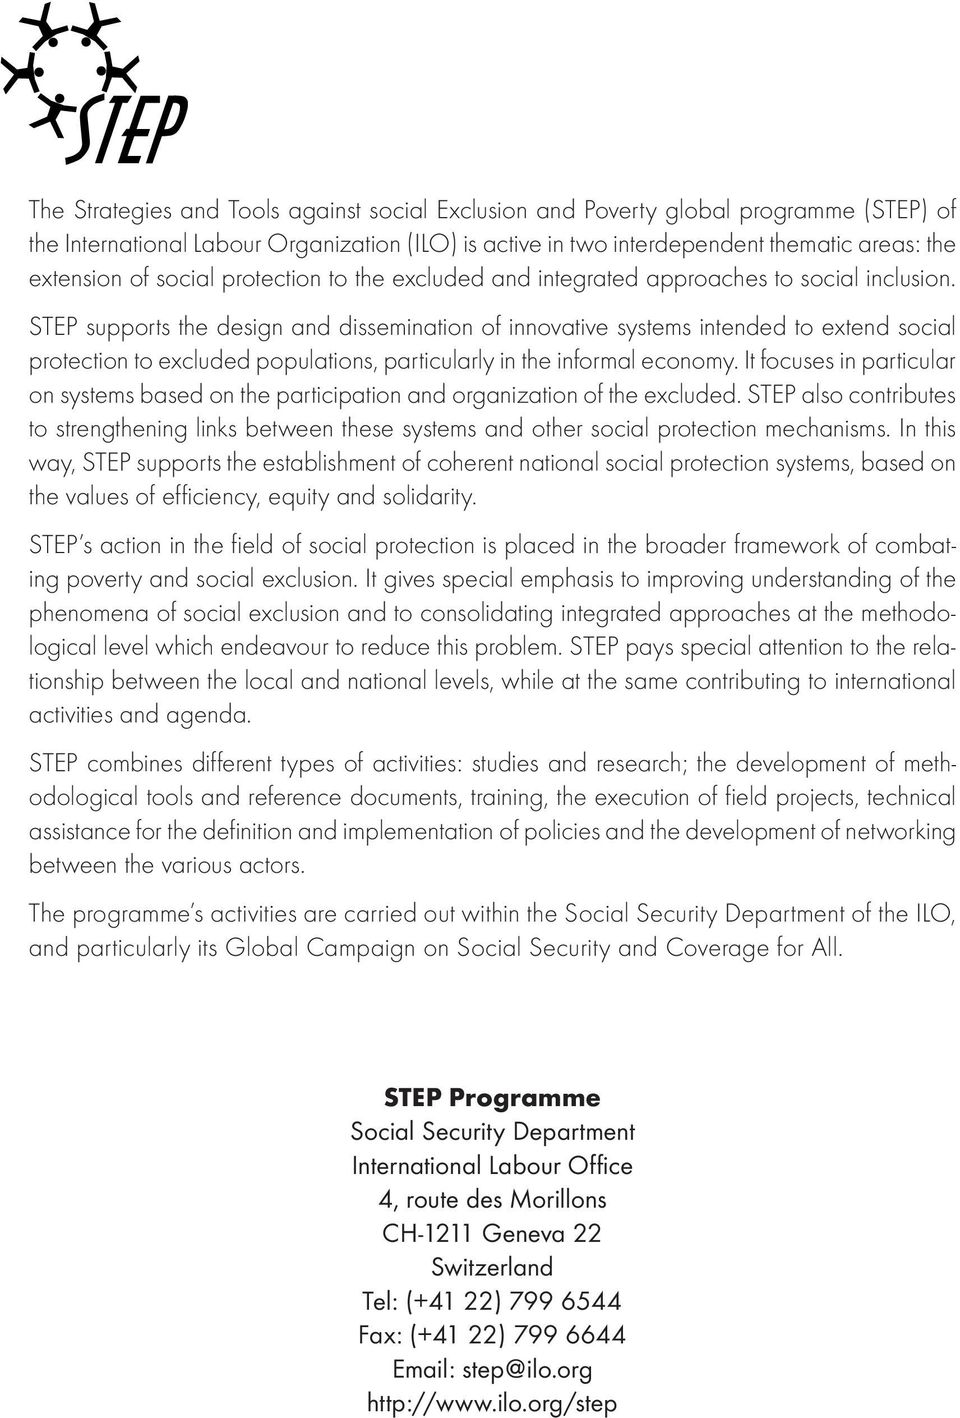 STEP supports the design and dissemination of innovative systems intended to extend social protection to excluded populations, particularly in the informal economy.